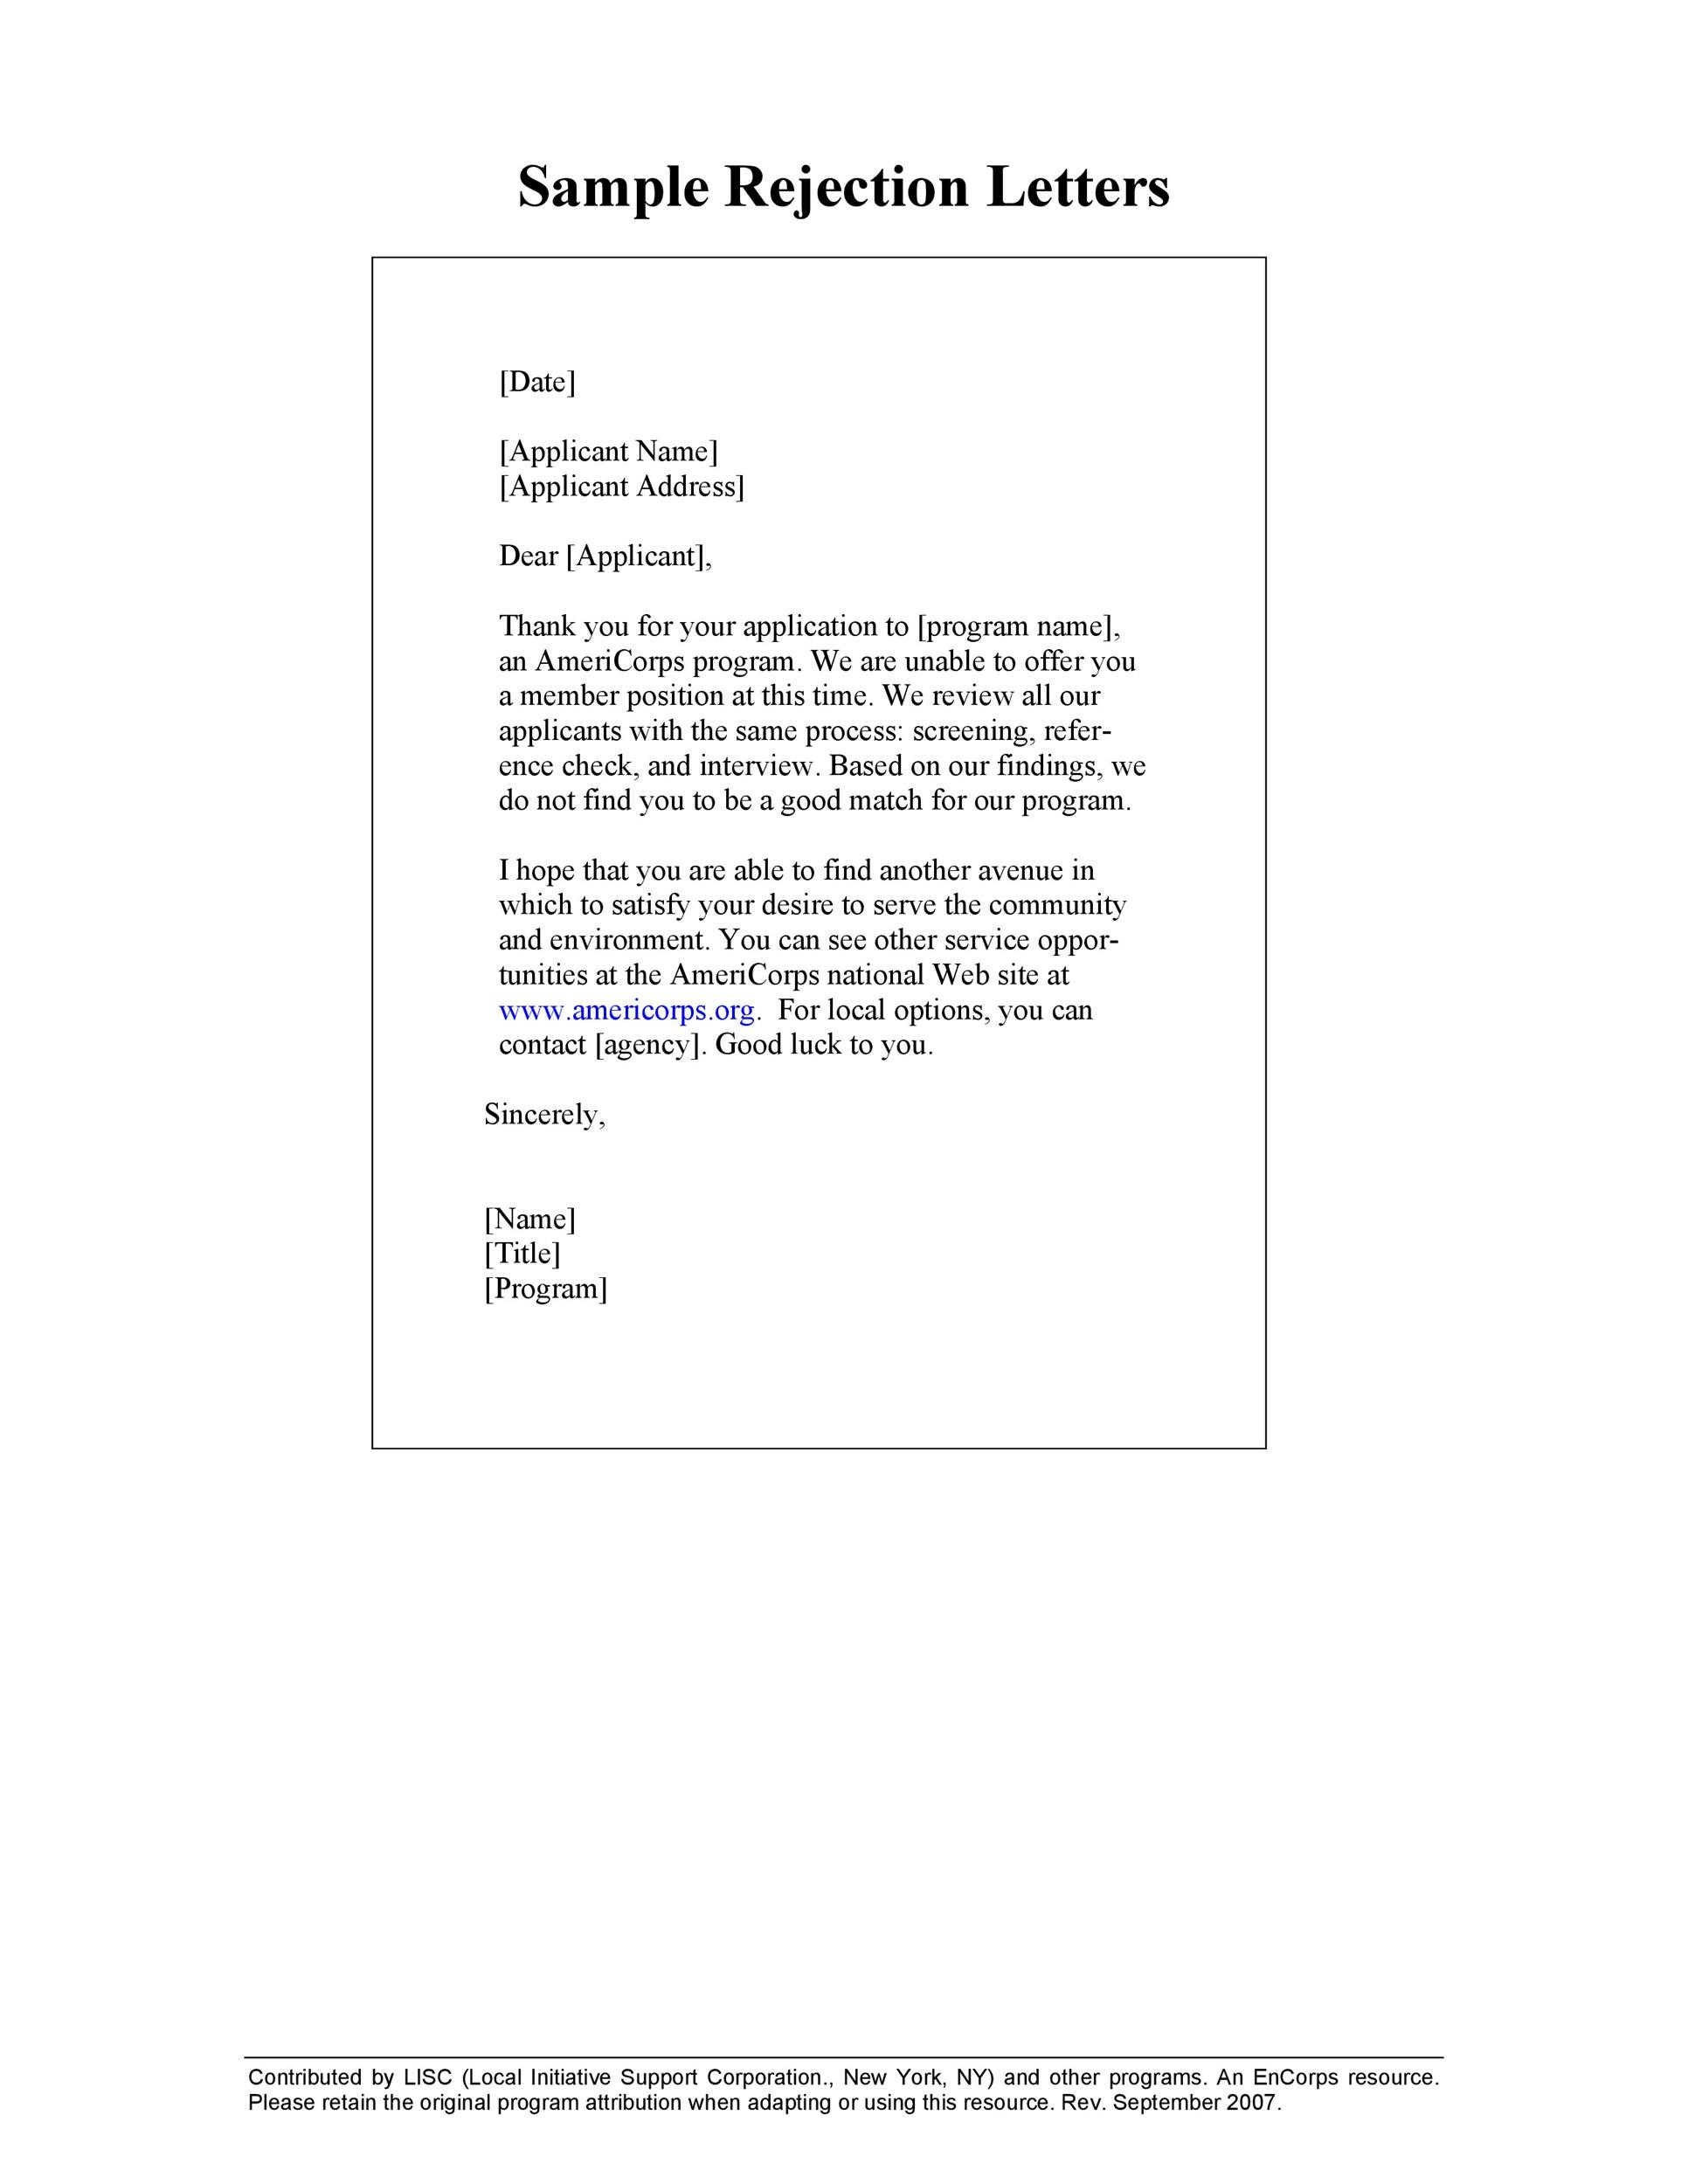 Applicant Rejection Letter Templates from templatelab.com